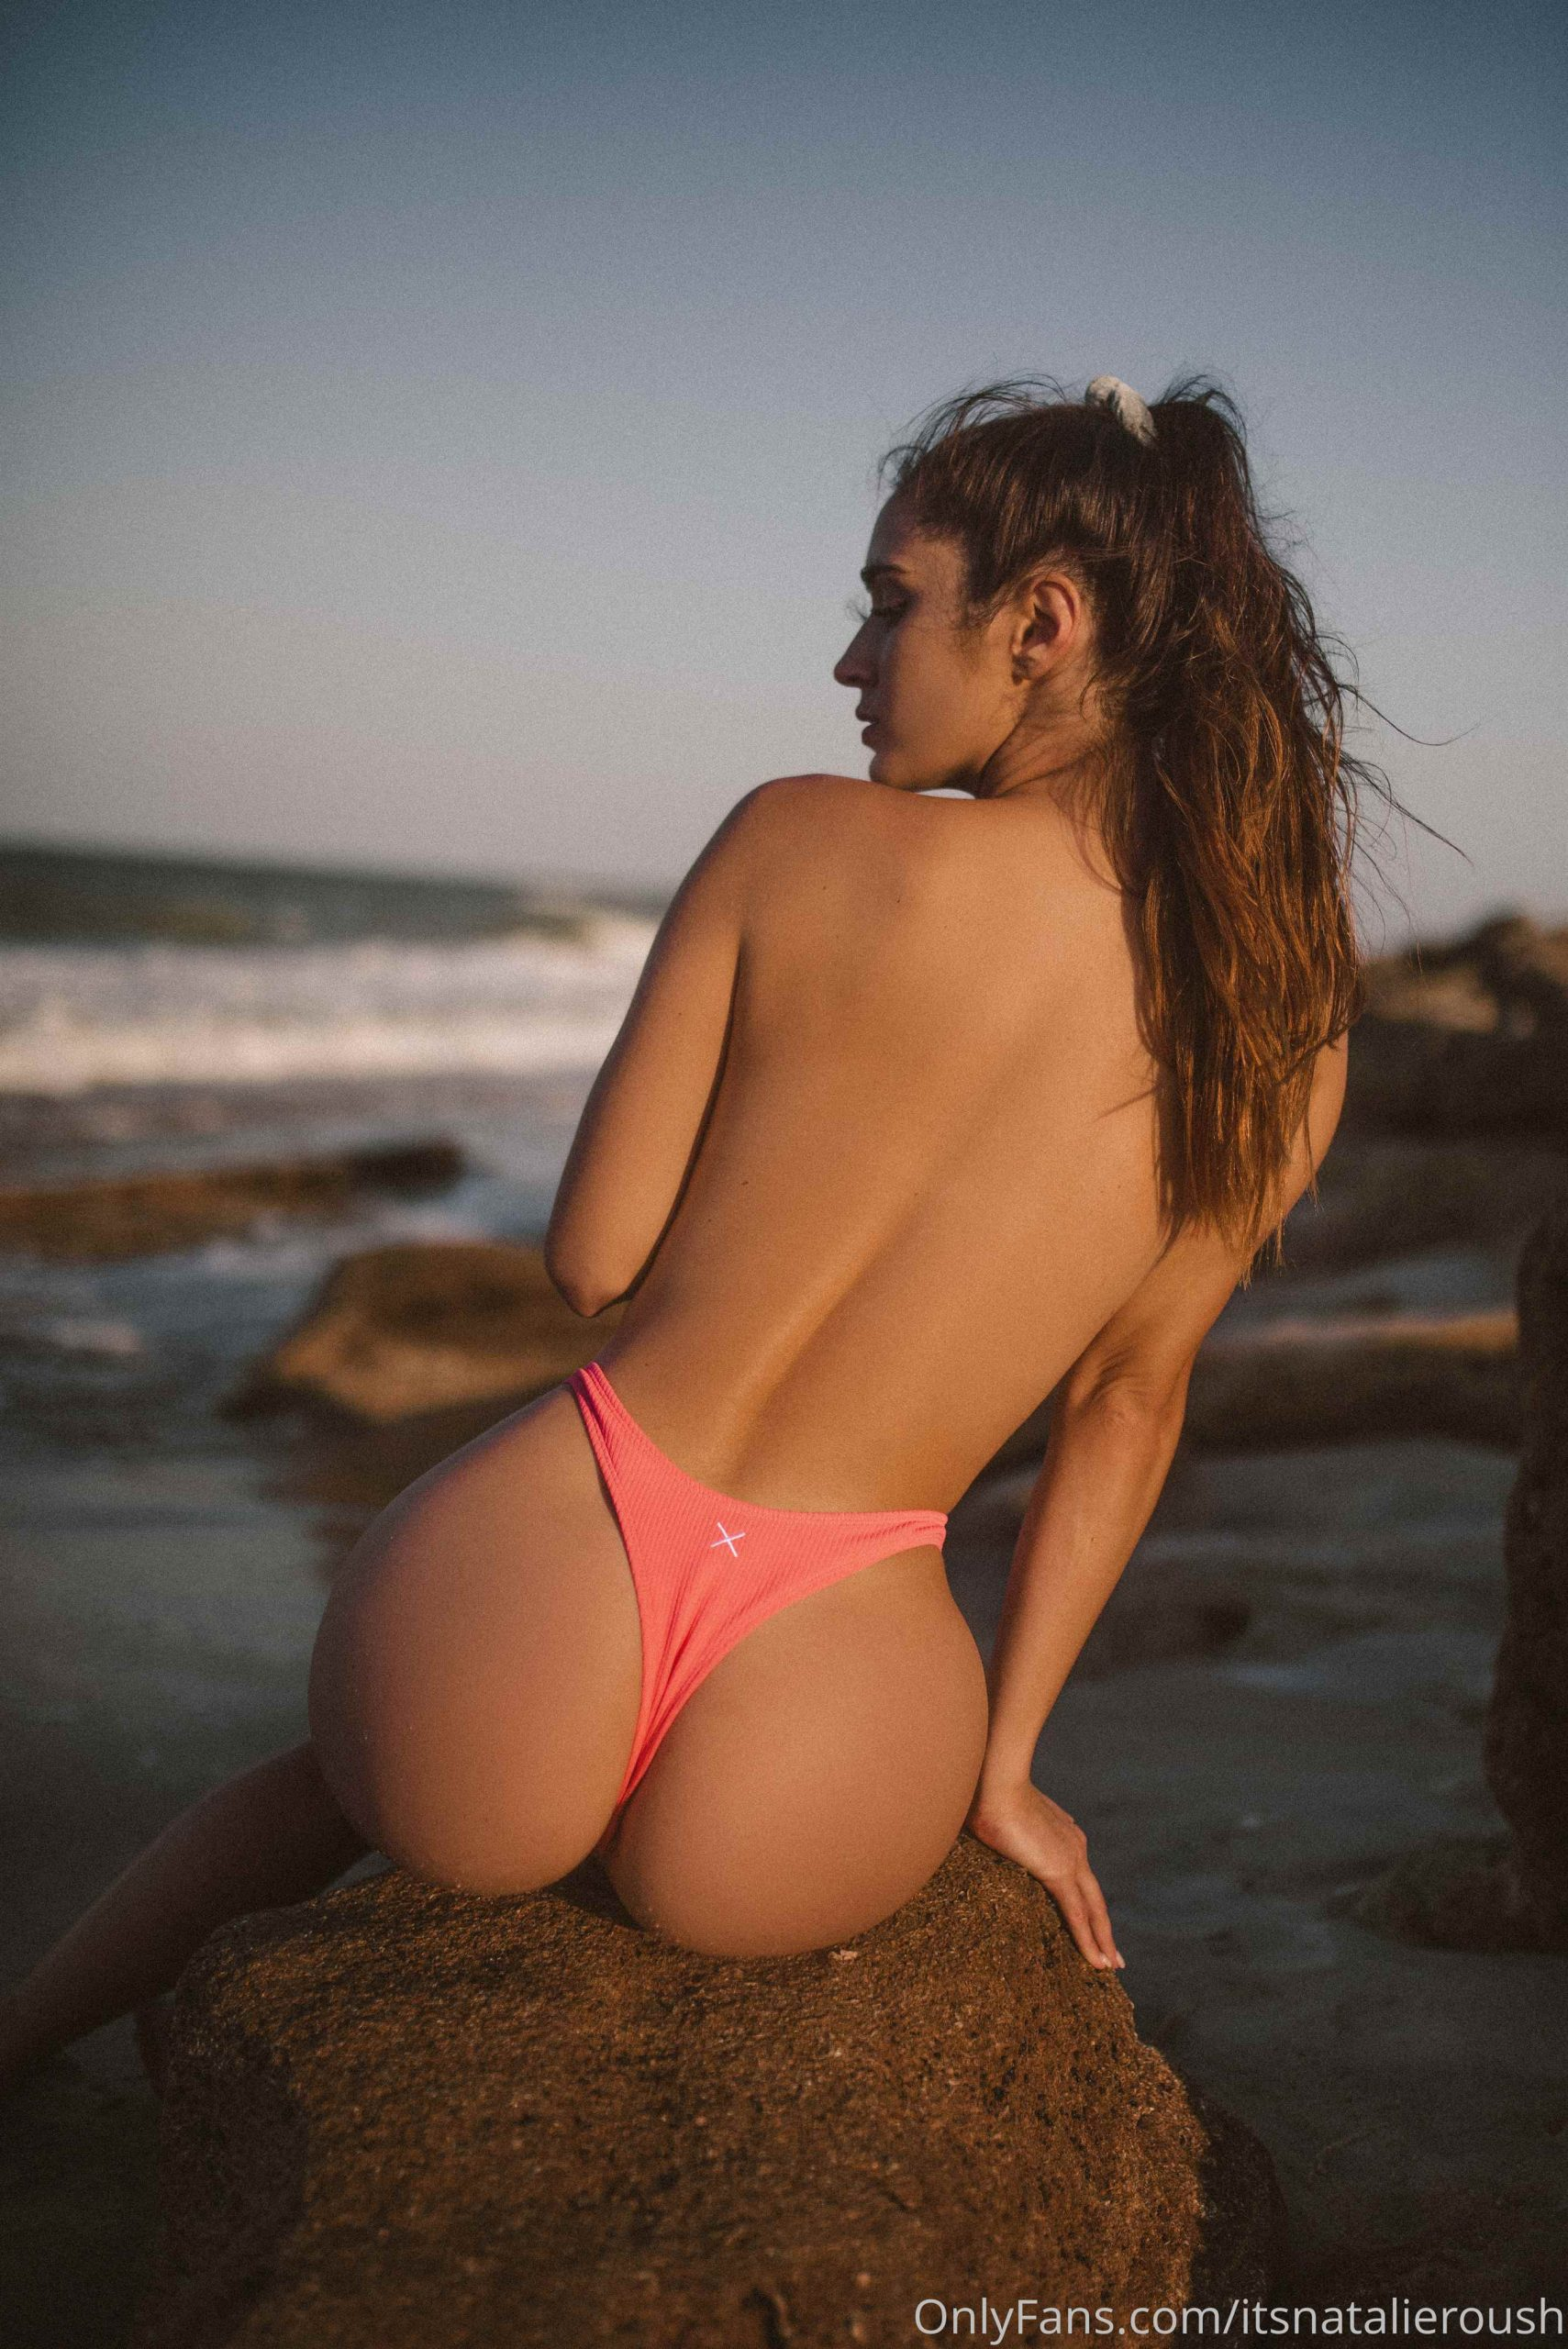 Natalie Roush Nude Leaked Onlyfans Photos 0047